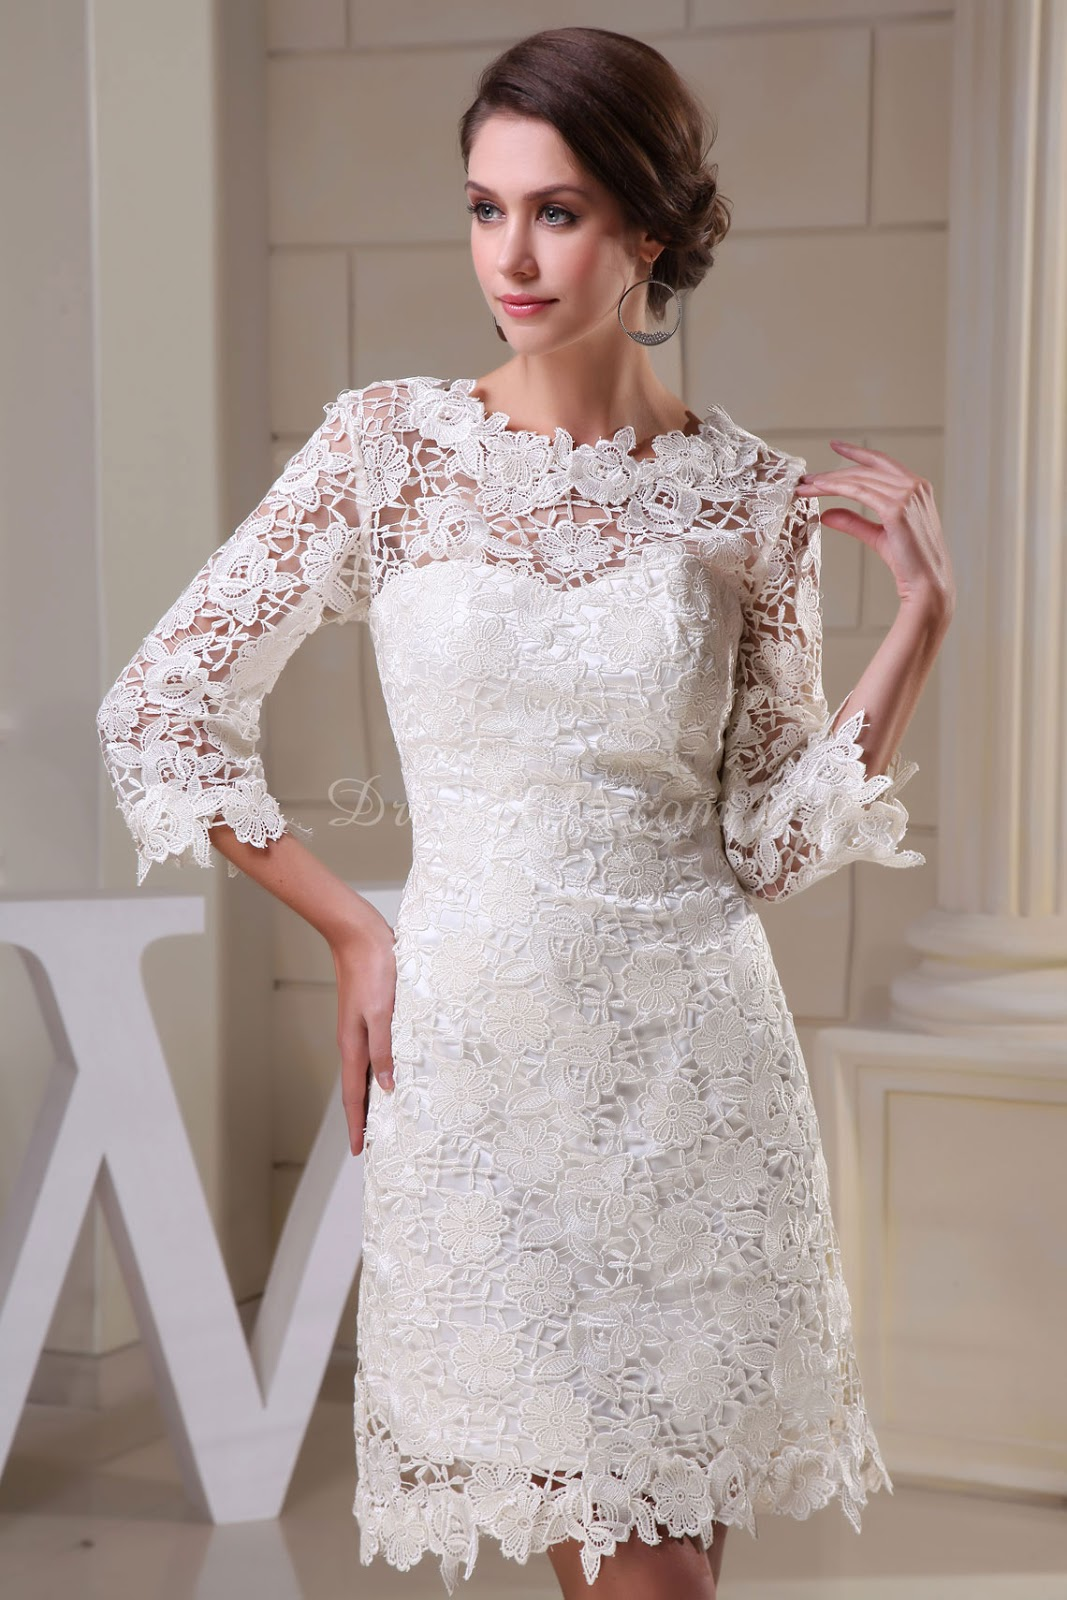 Knee length wedding dresses with sleeves uk wedding dresses for Knee length wedding dresses with sleeves